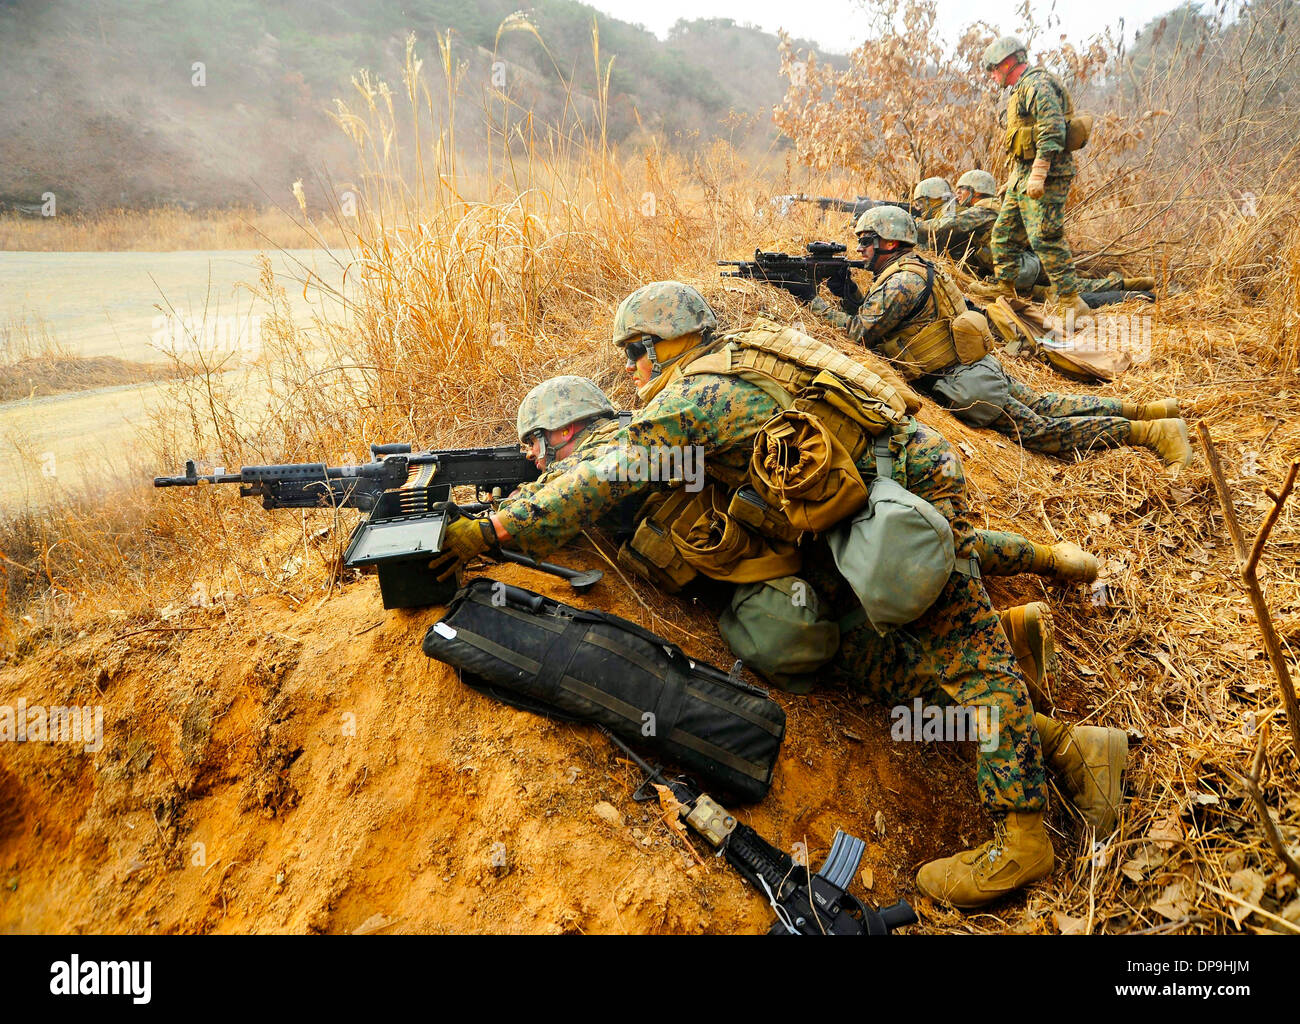 Marines assigned to 2nd Platoon, Fleet Anti-terrorism Security Team Company Pacific, conduct a live fire exercise Stock Photo